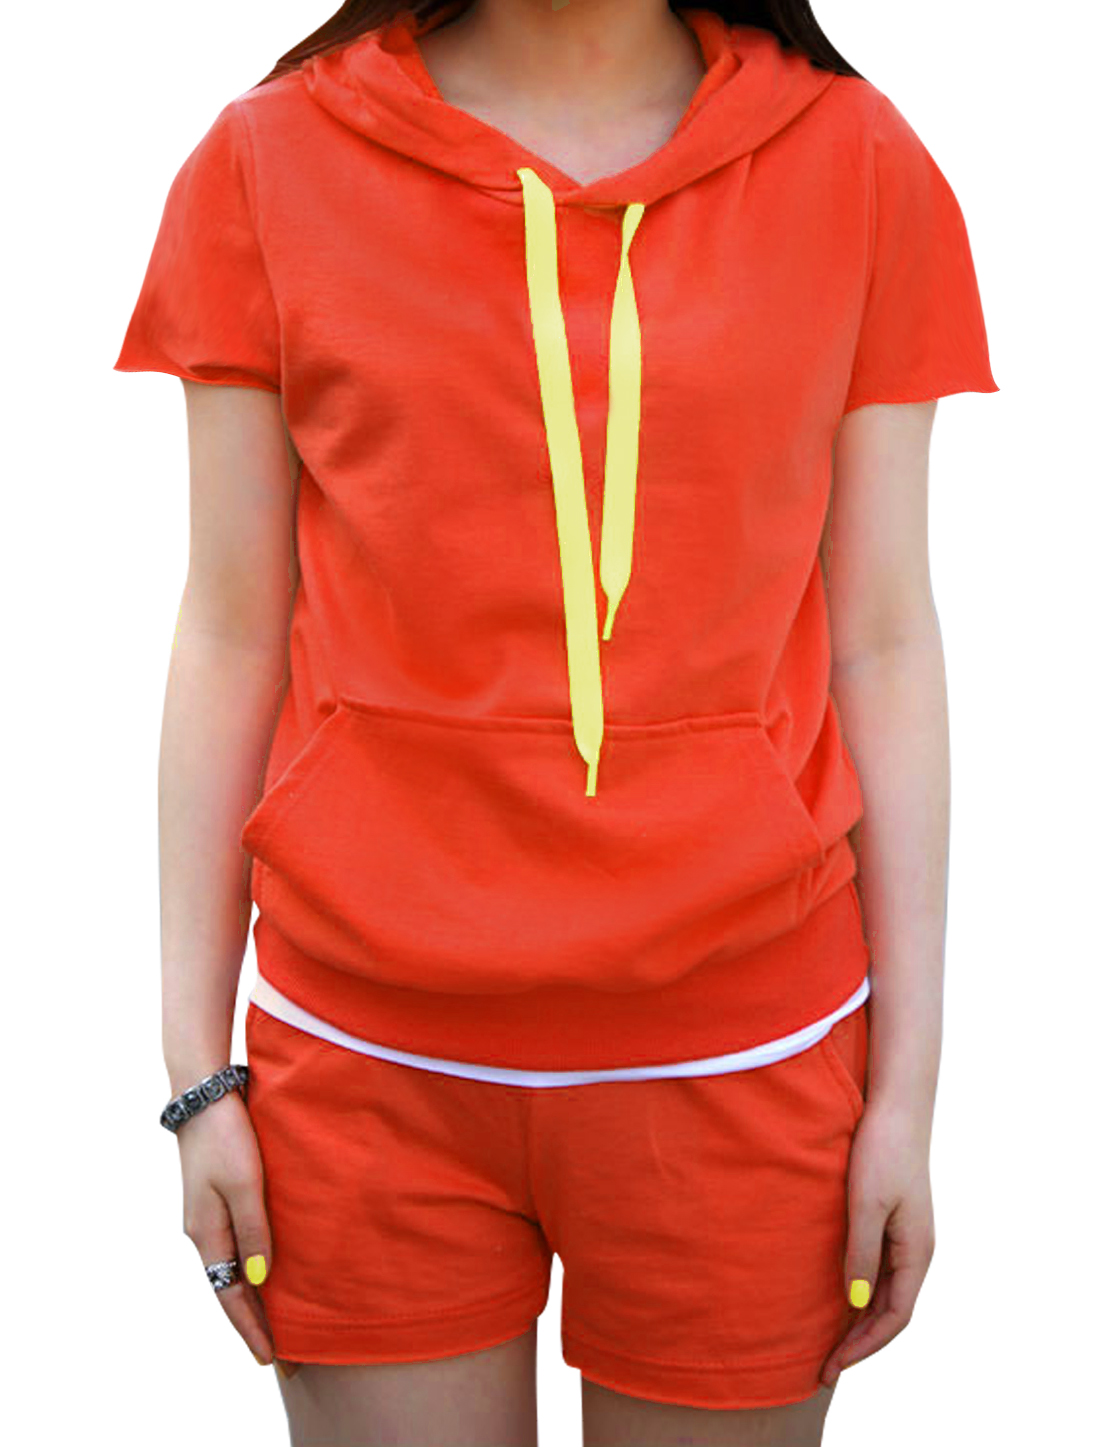 Lady Chic Single Pocket Hooded Top w Elastic Waist Shorts Orange-red XS